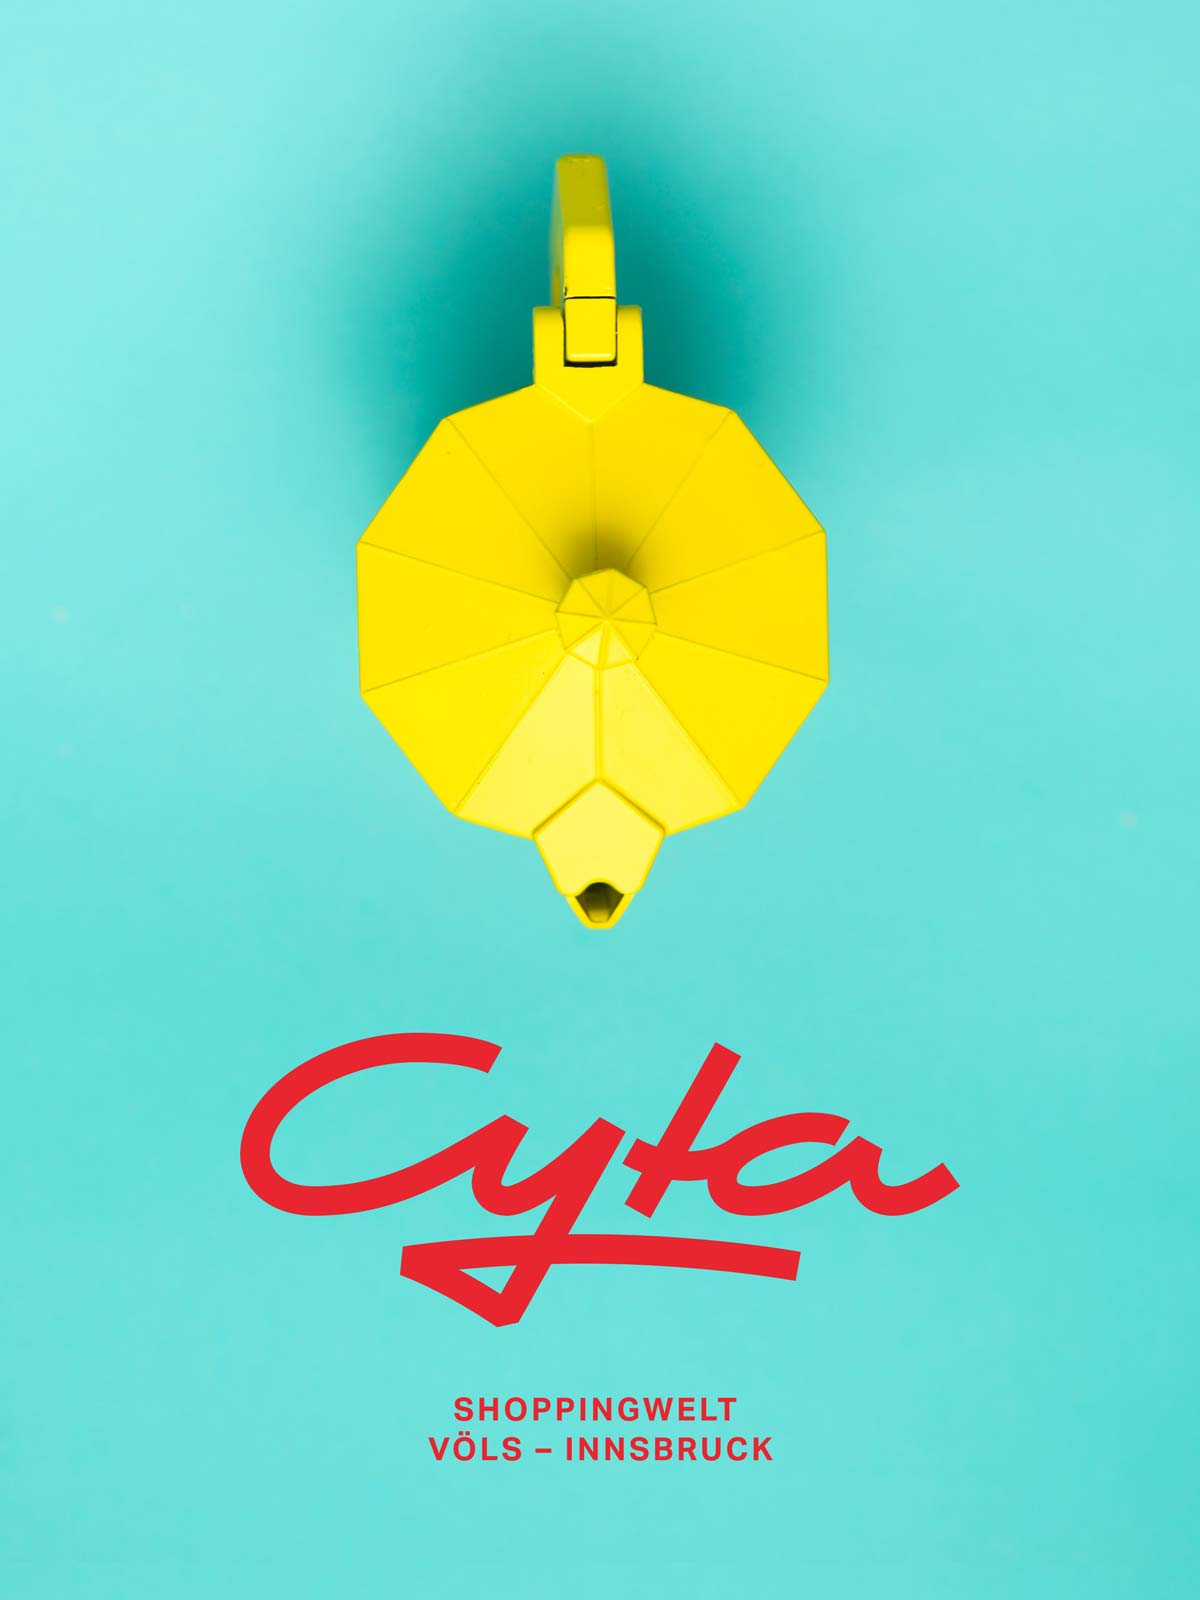 Cyta Shoppingwelt logo on photography of turquoise background with yellow bialetti by Alex Gruber from Unsplash